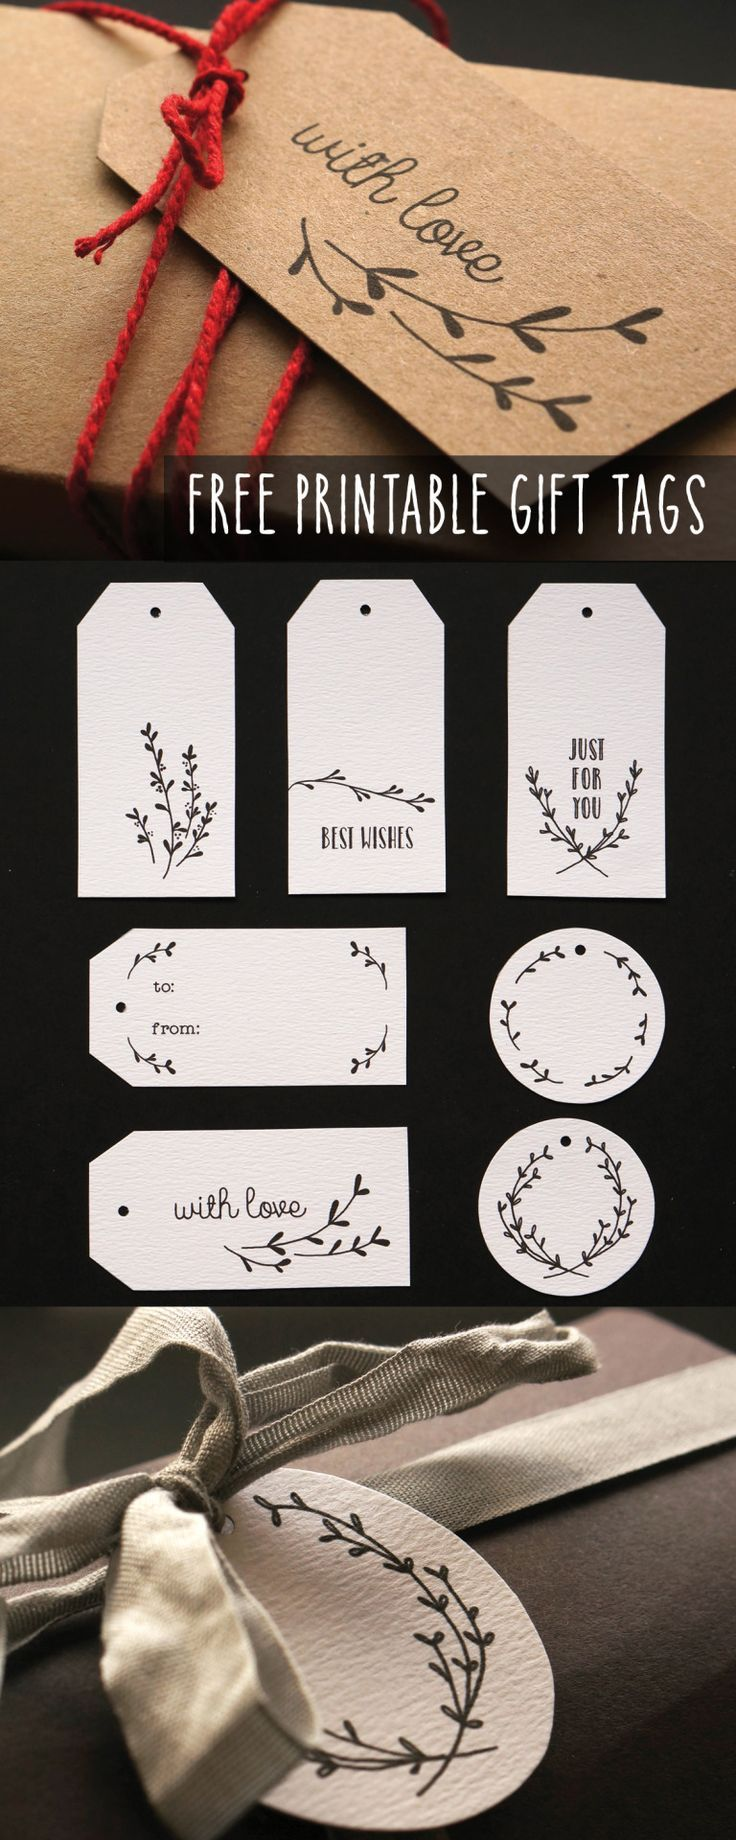 Some sweet little hand illustrated gift tags the perfect some sweet little hand illustrated gift tags the perfect finishing touch to those christmas presents negle Choice Image